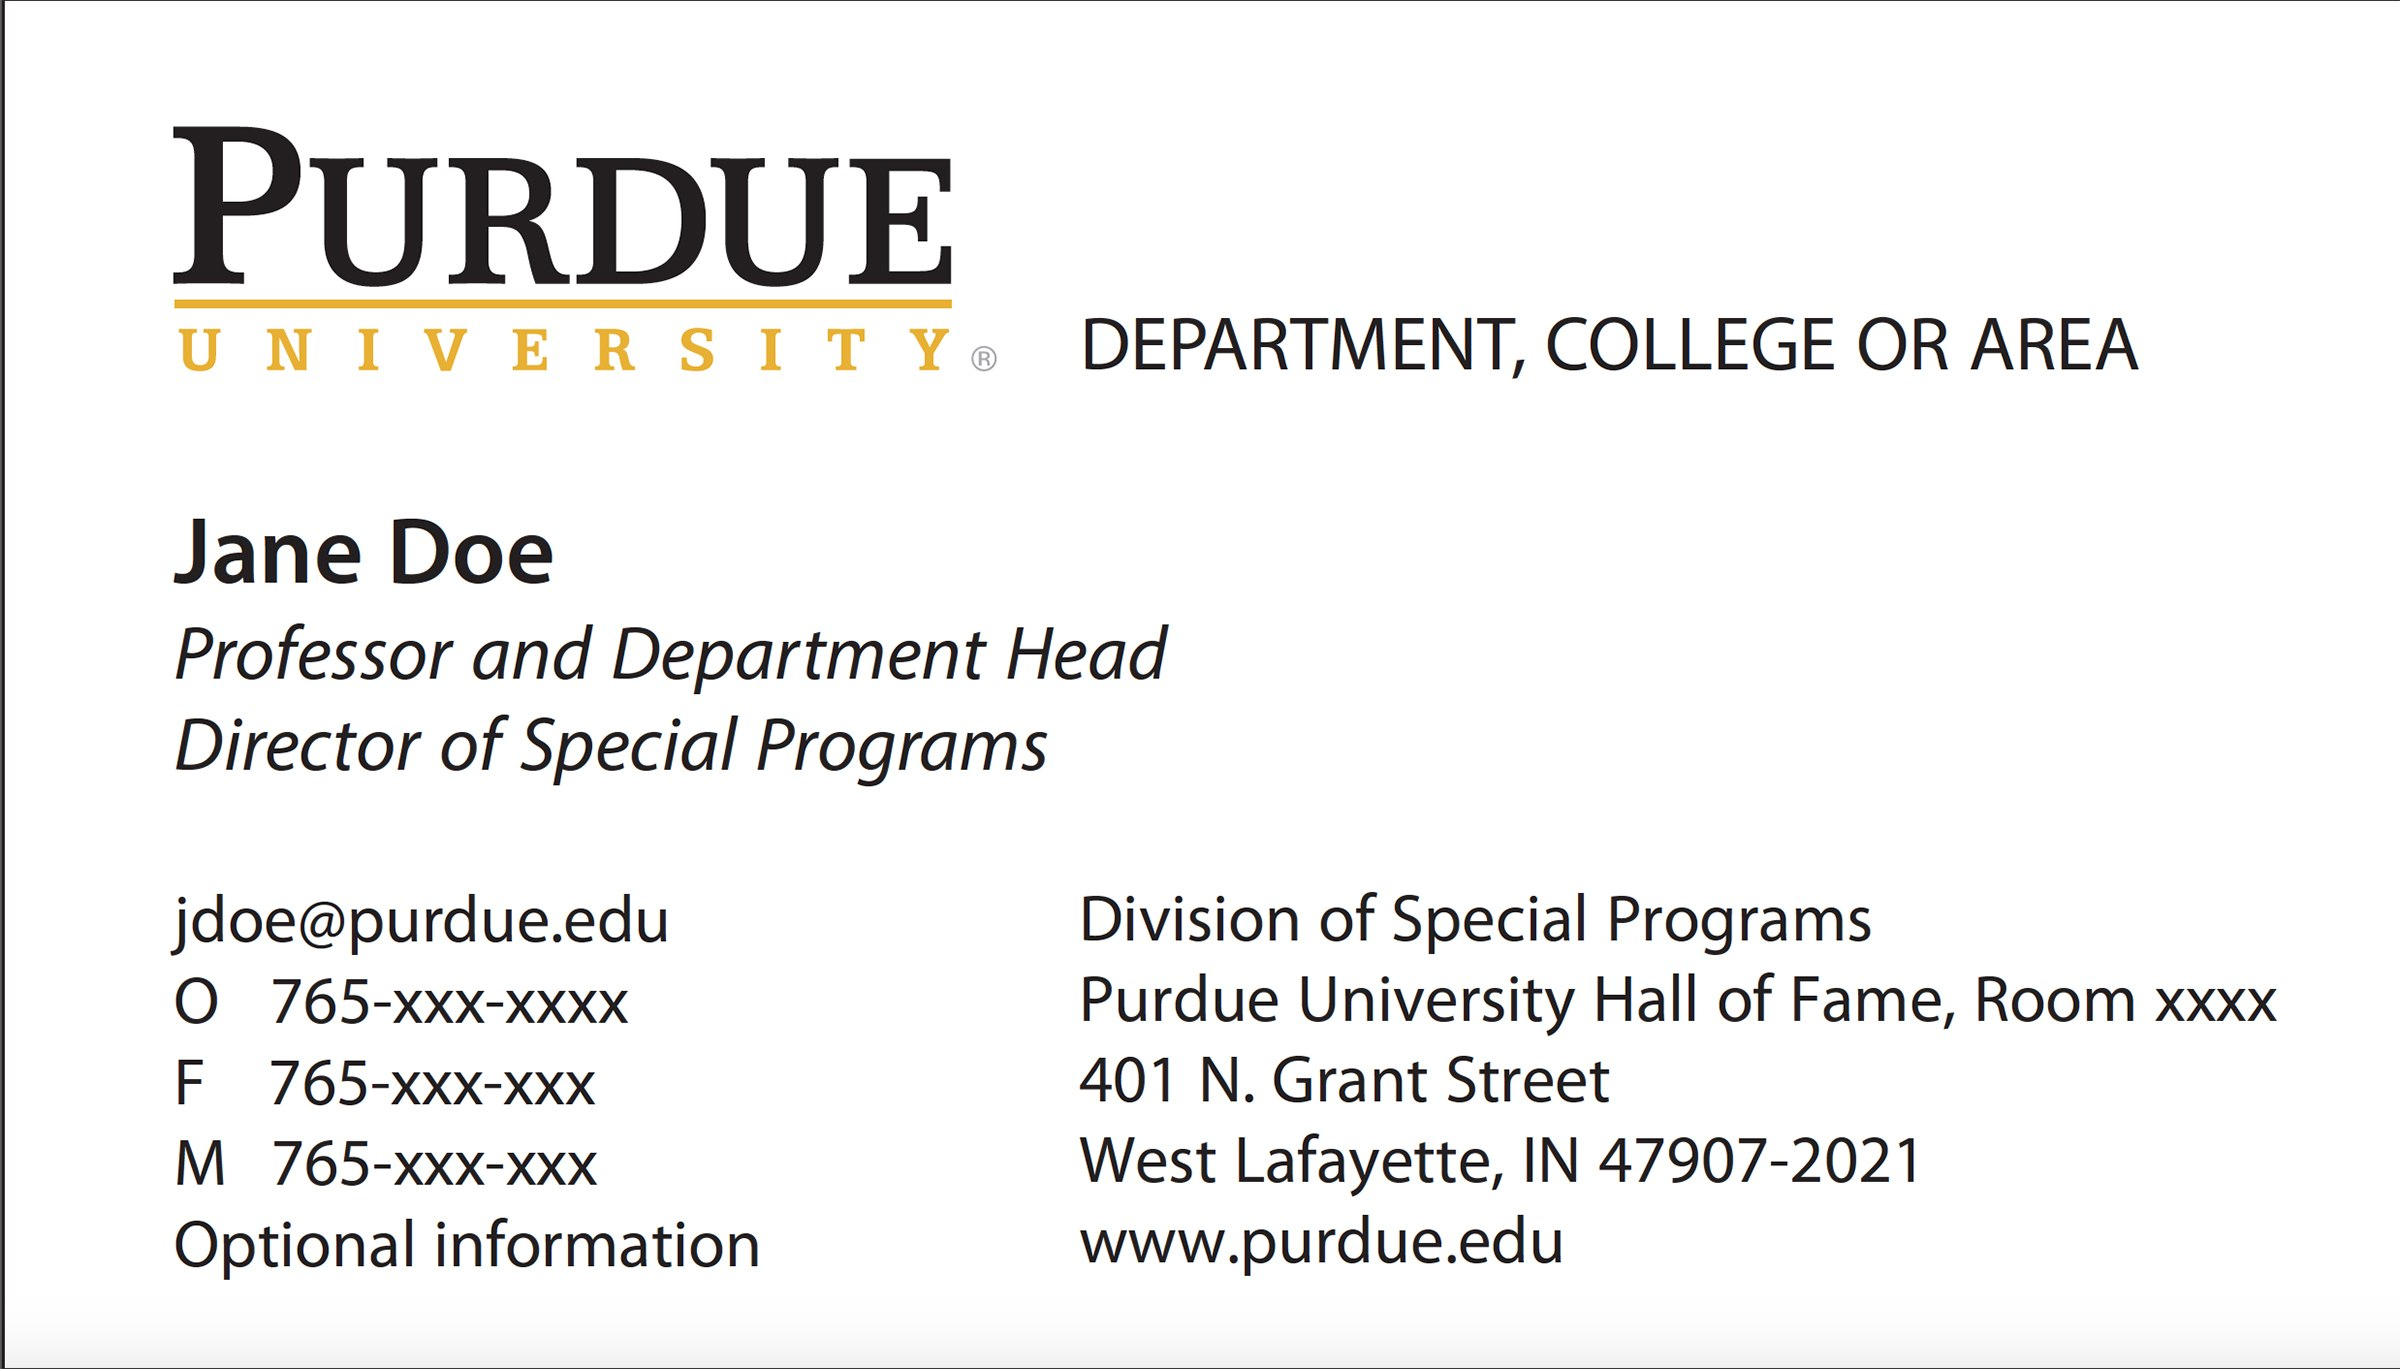 New Business Card Template Now Online  Purdue University News With Student Business Card Template